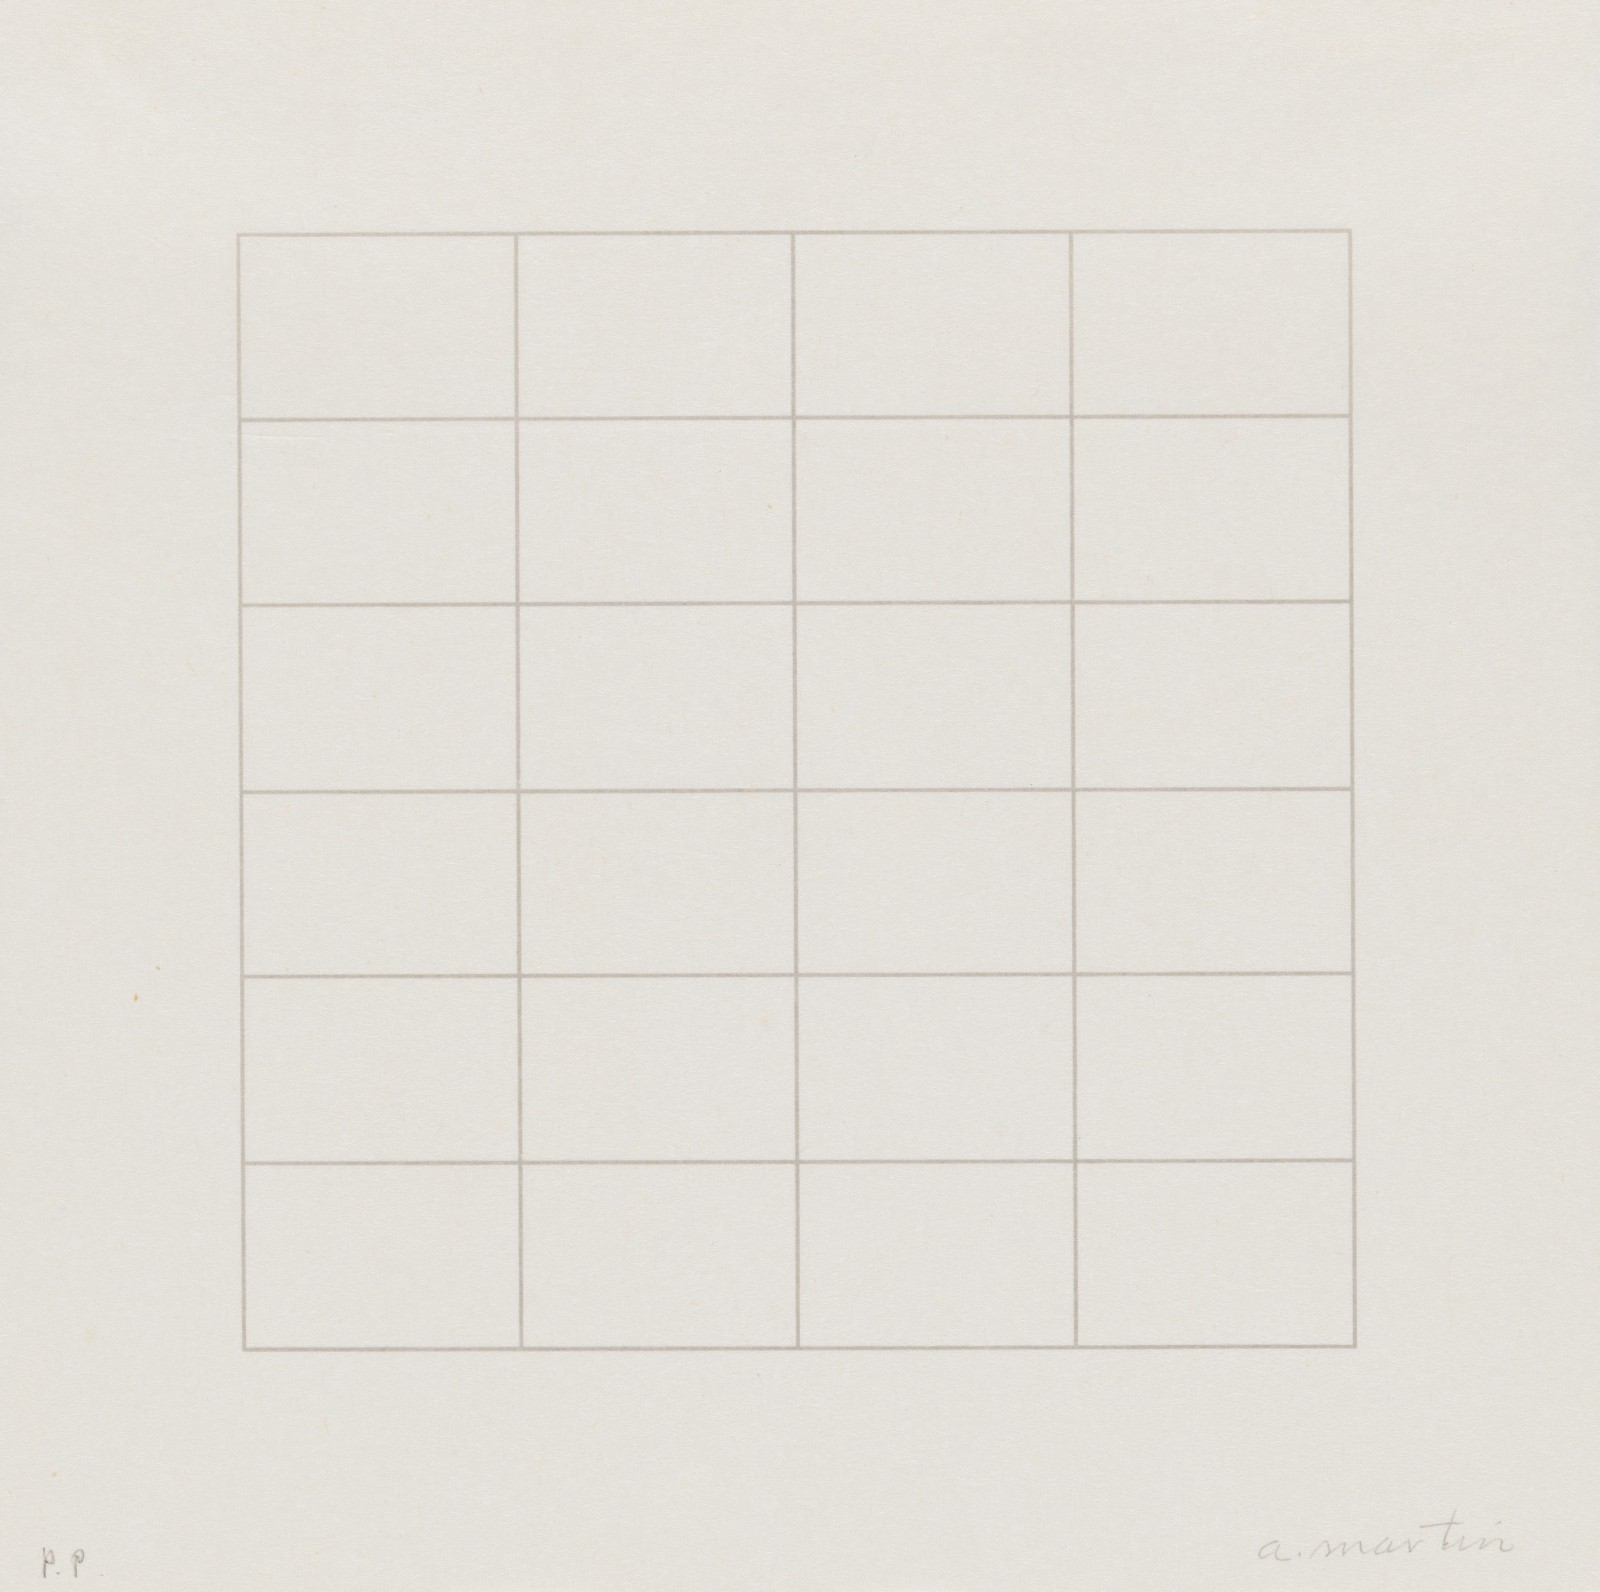 Image: Agnes Martin, Untitled from the portfolio On a Clear Day, 1973